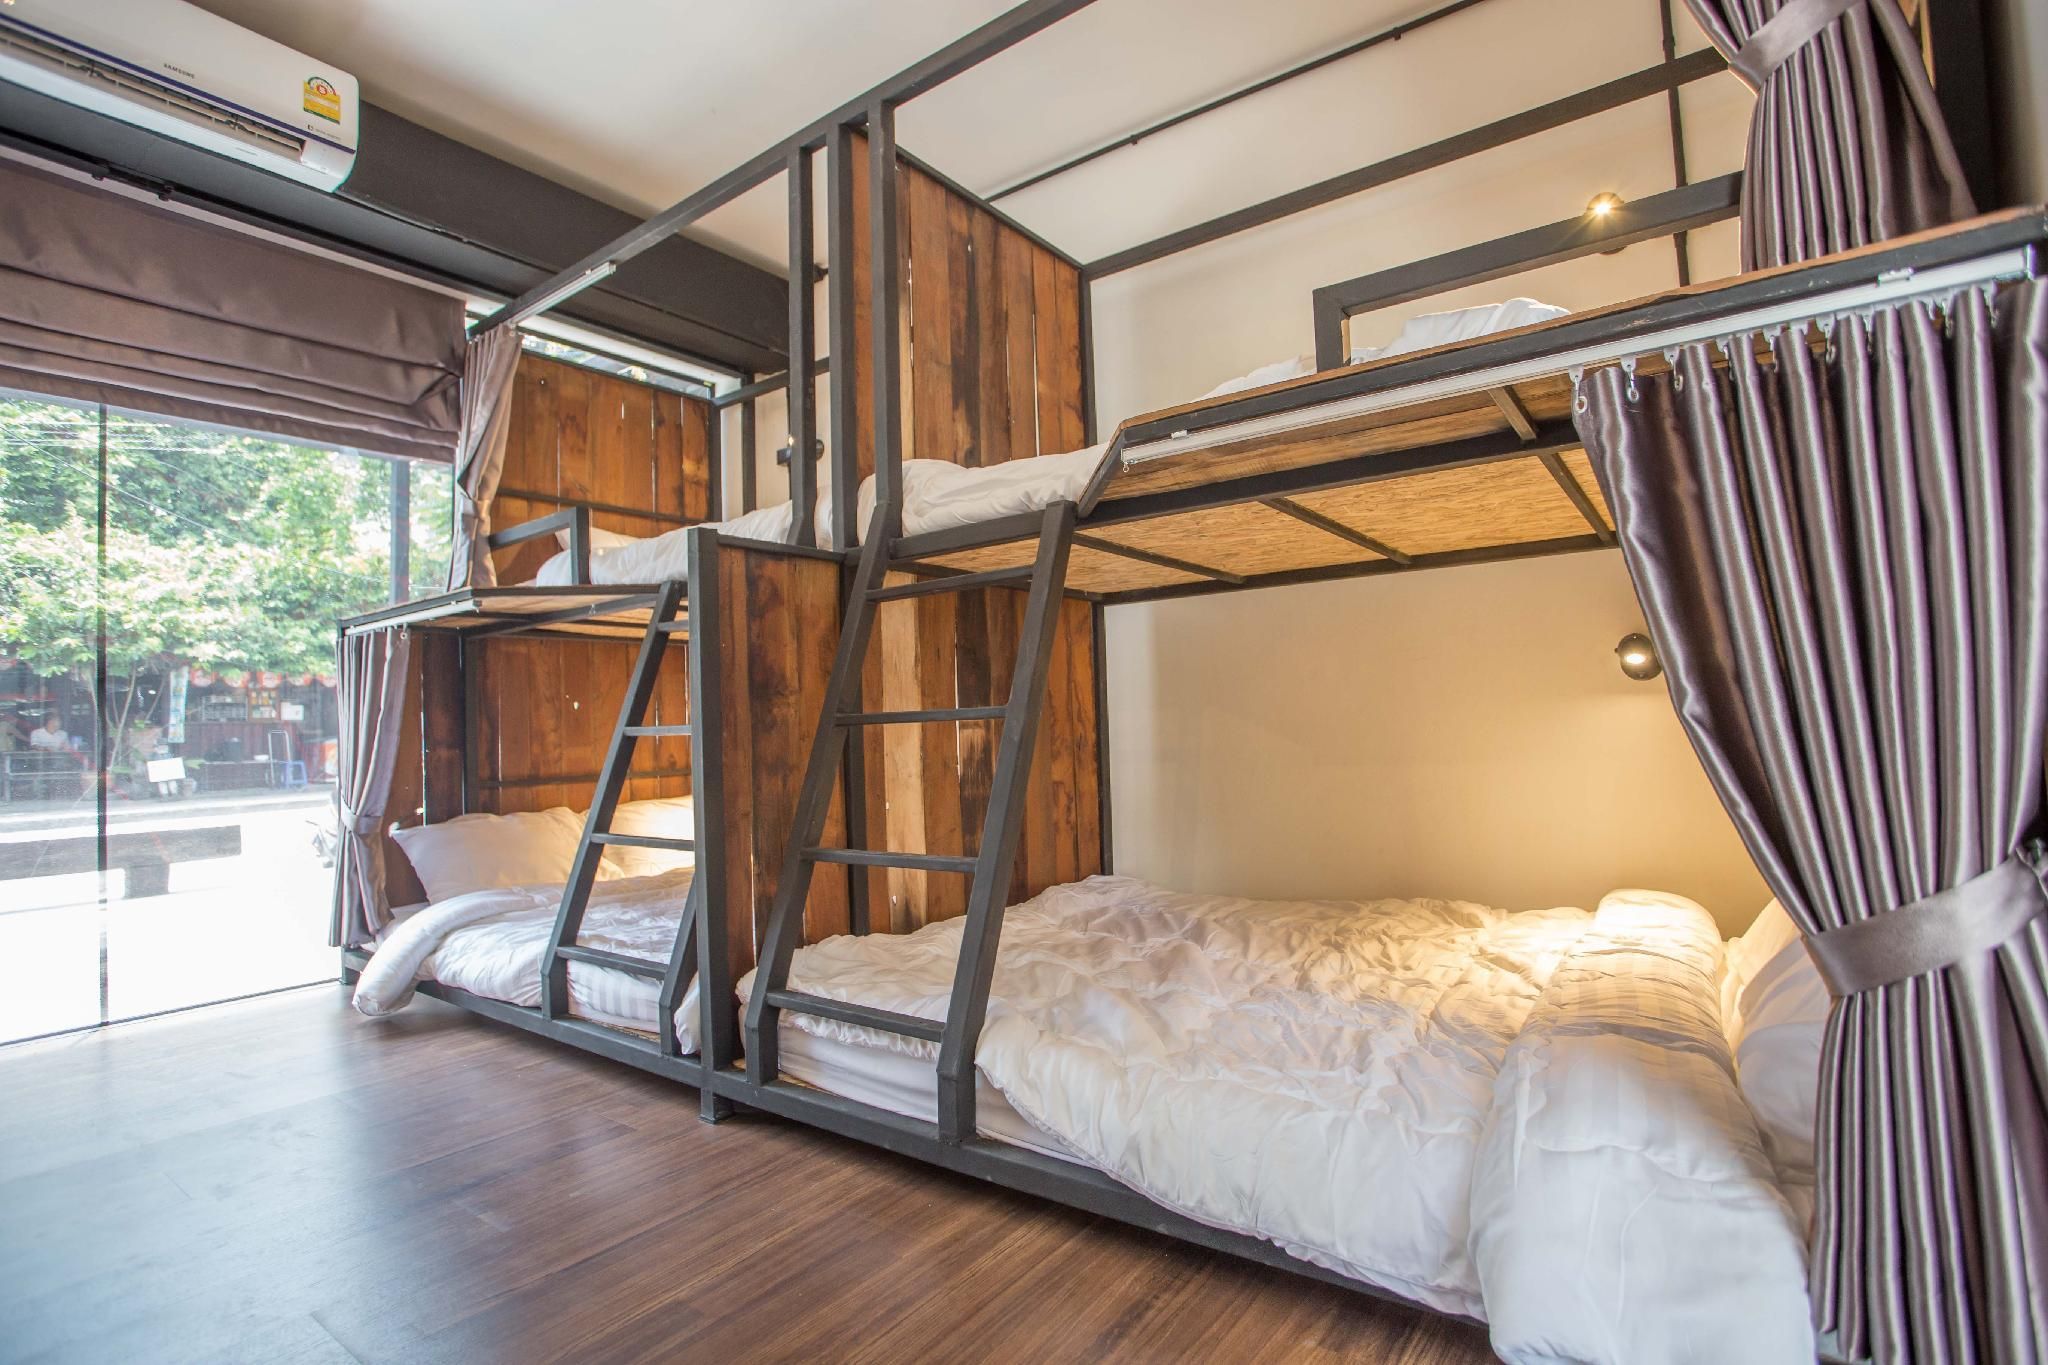 1 Semi-Double Bed for 2 People in 16-Bed Dormitory - Mixed